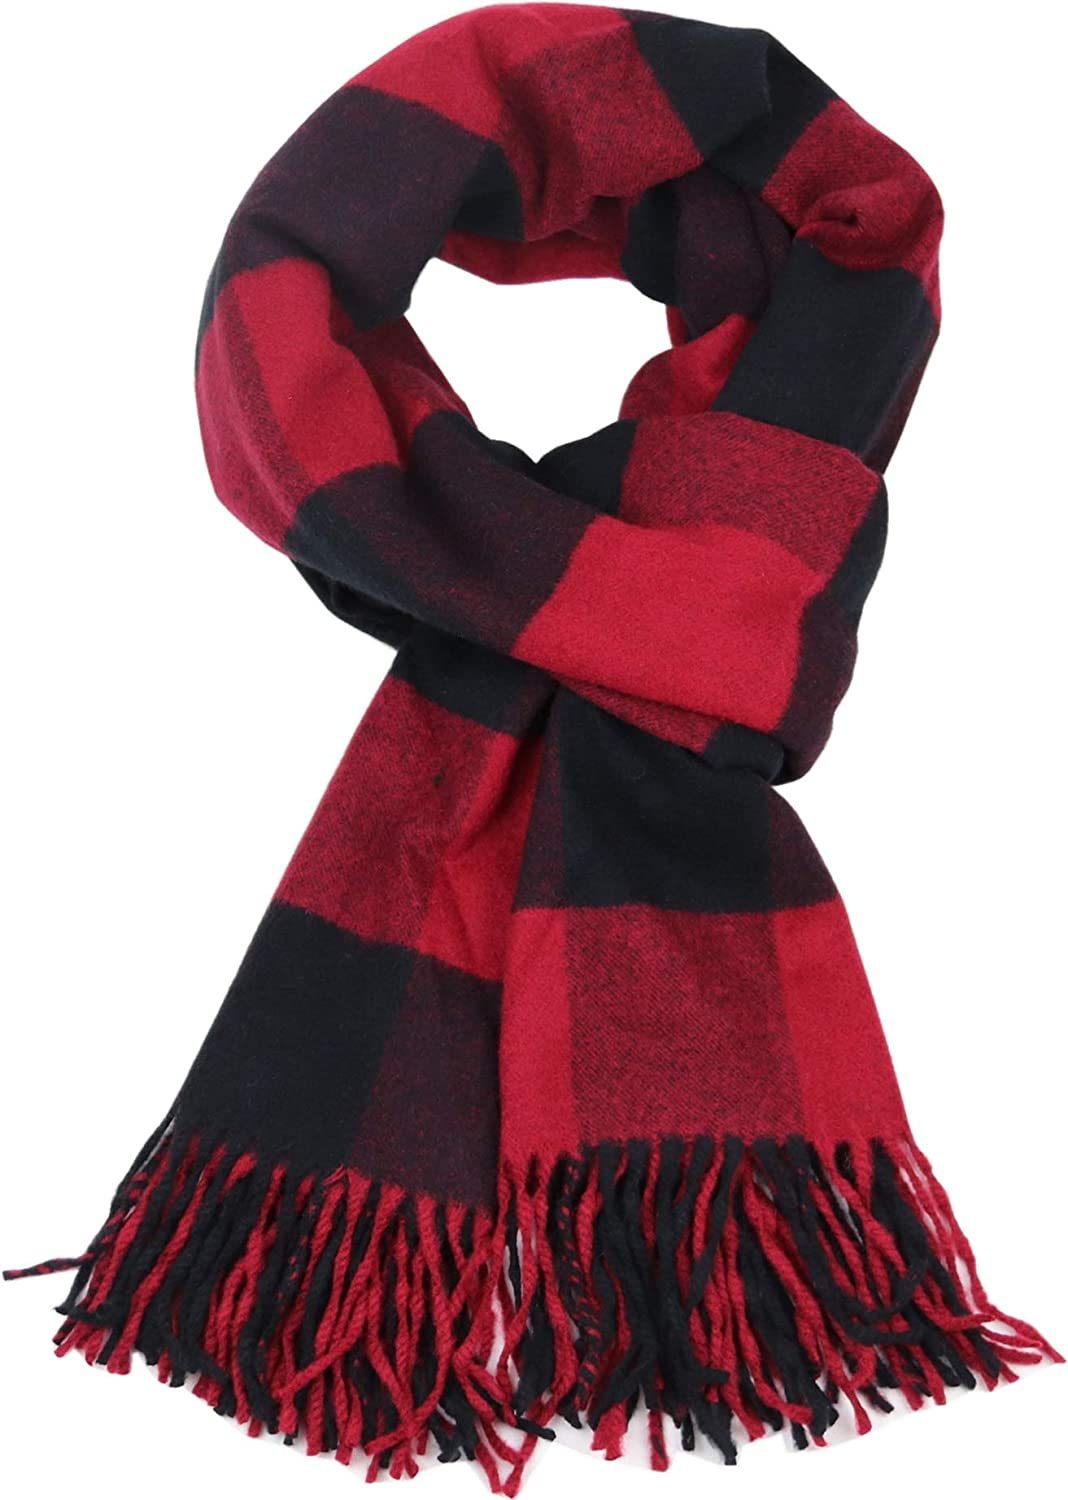 Cashmere Wrap Scarf Wool Blend Shawl Stole for Women and Men Winter Large Size Plaid Pattern